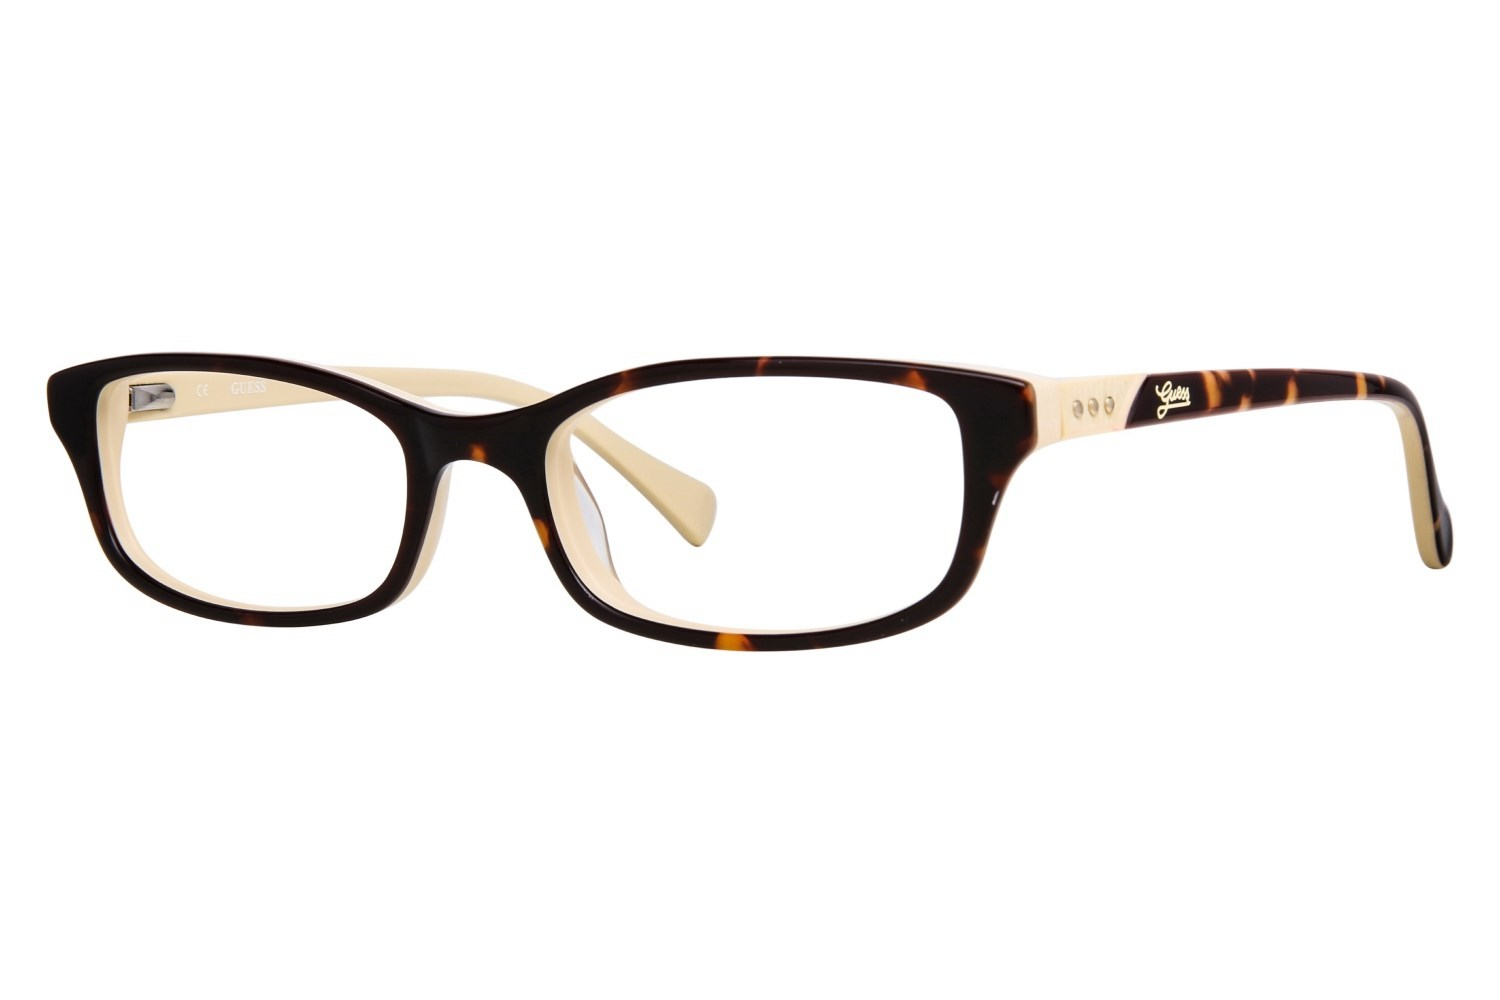 Guess GU 2292 Prescription Eyeglasses